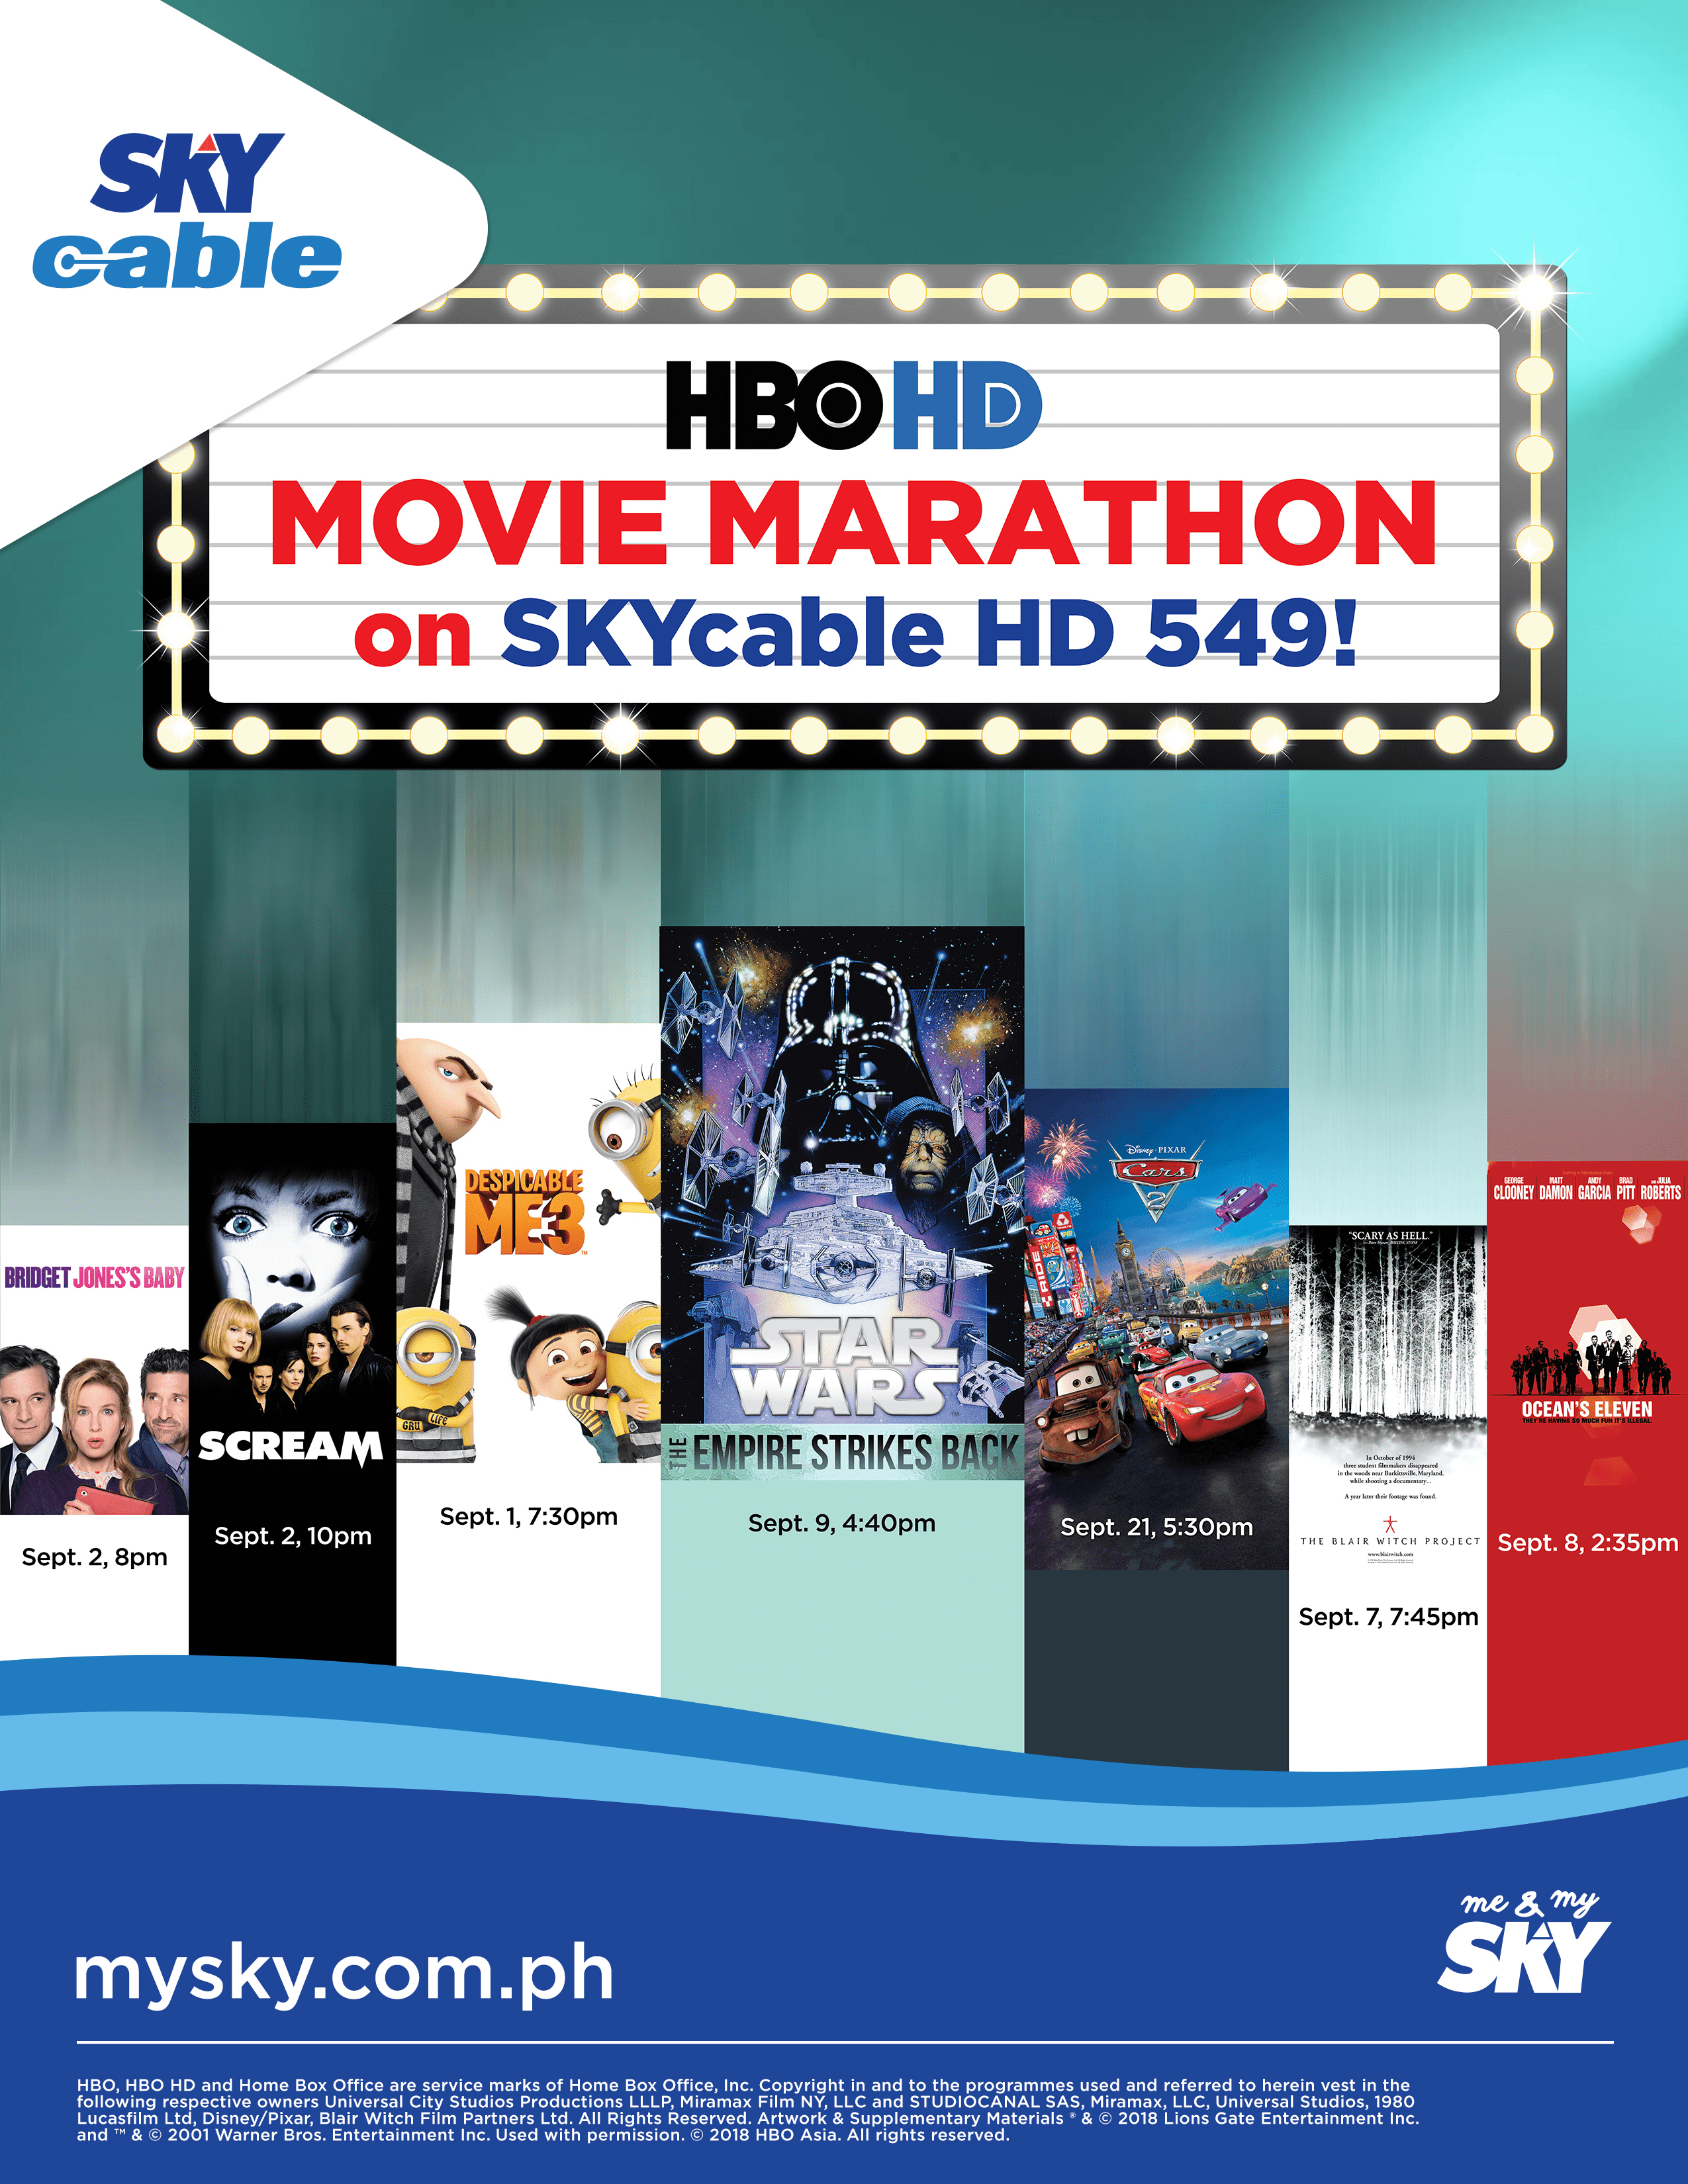 hbo-hd-movies-cebu-skycable